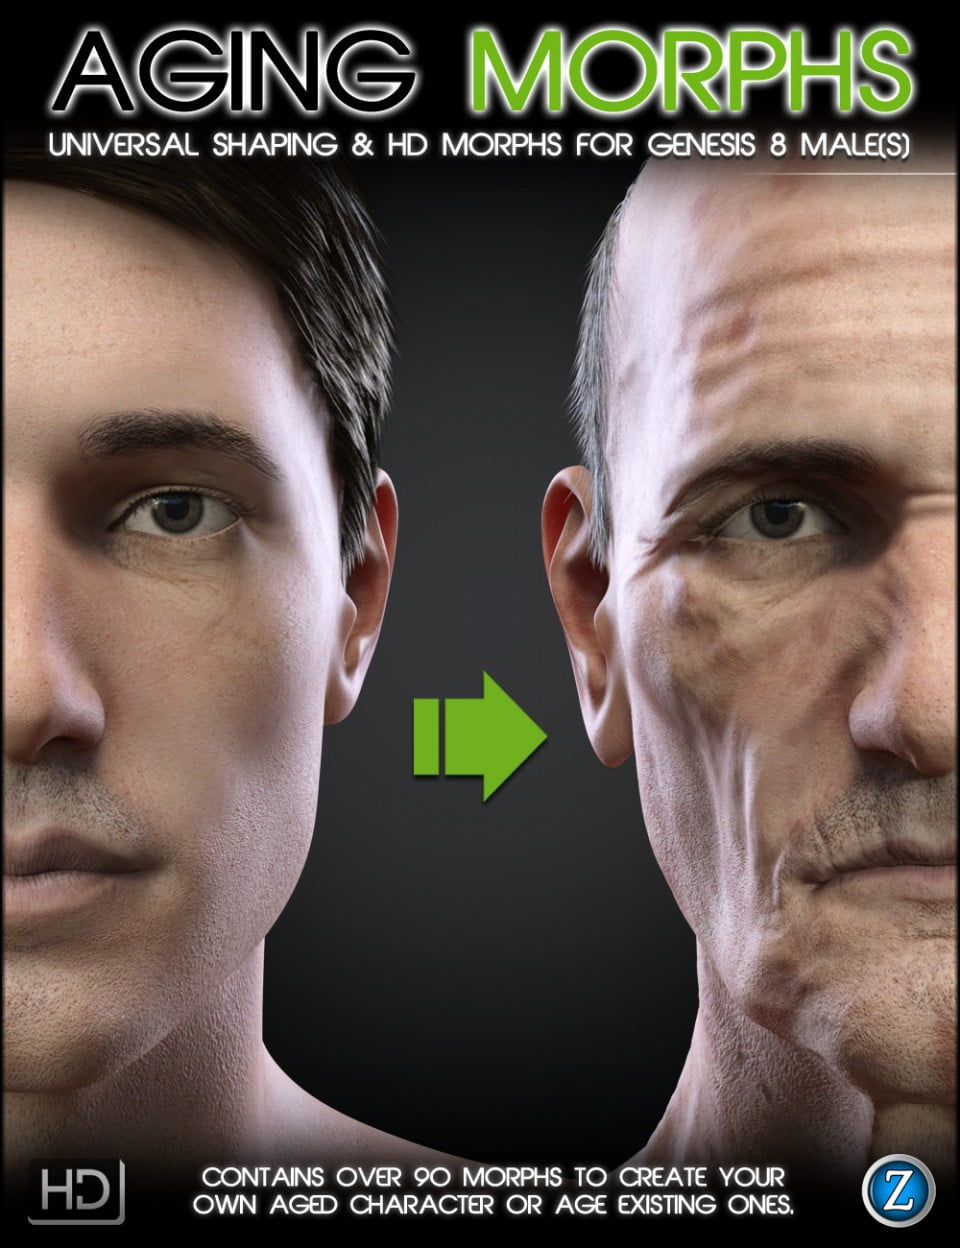 Aging Morphs for Genesis 8 Male(s)